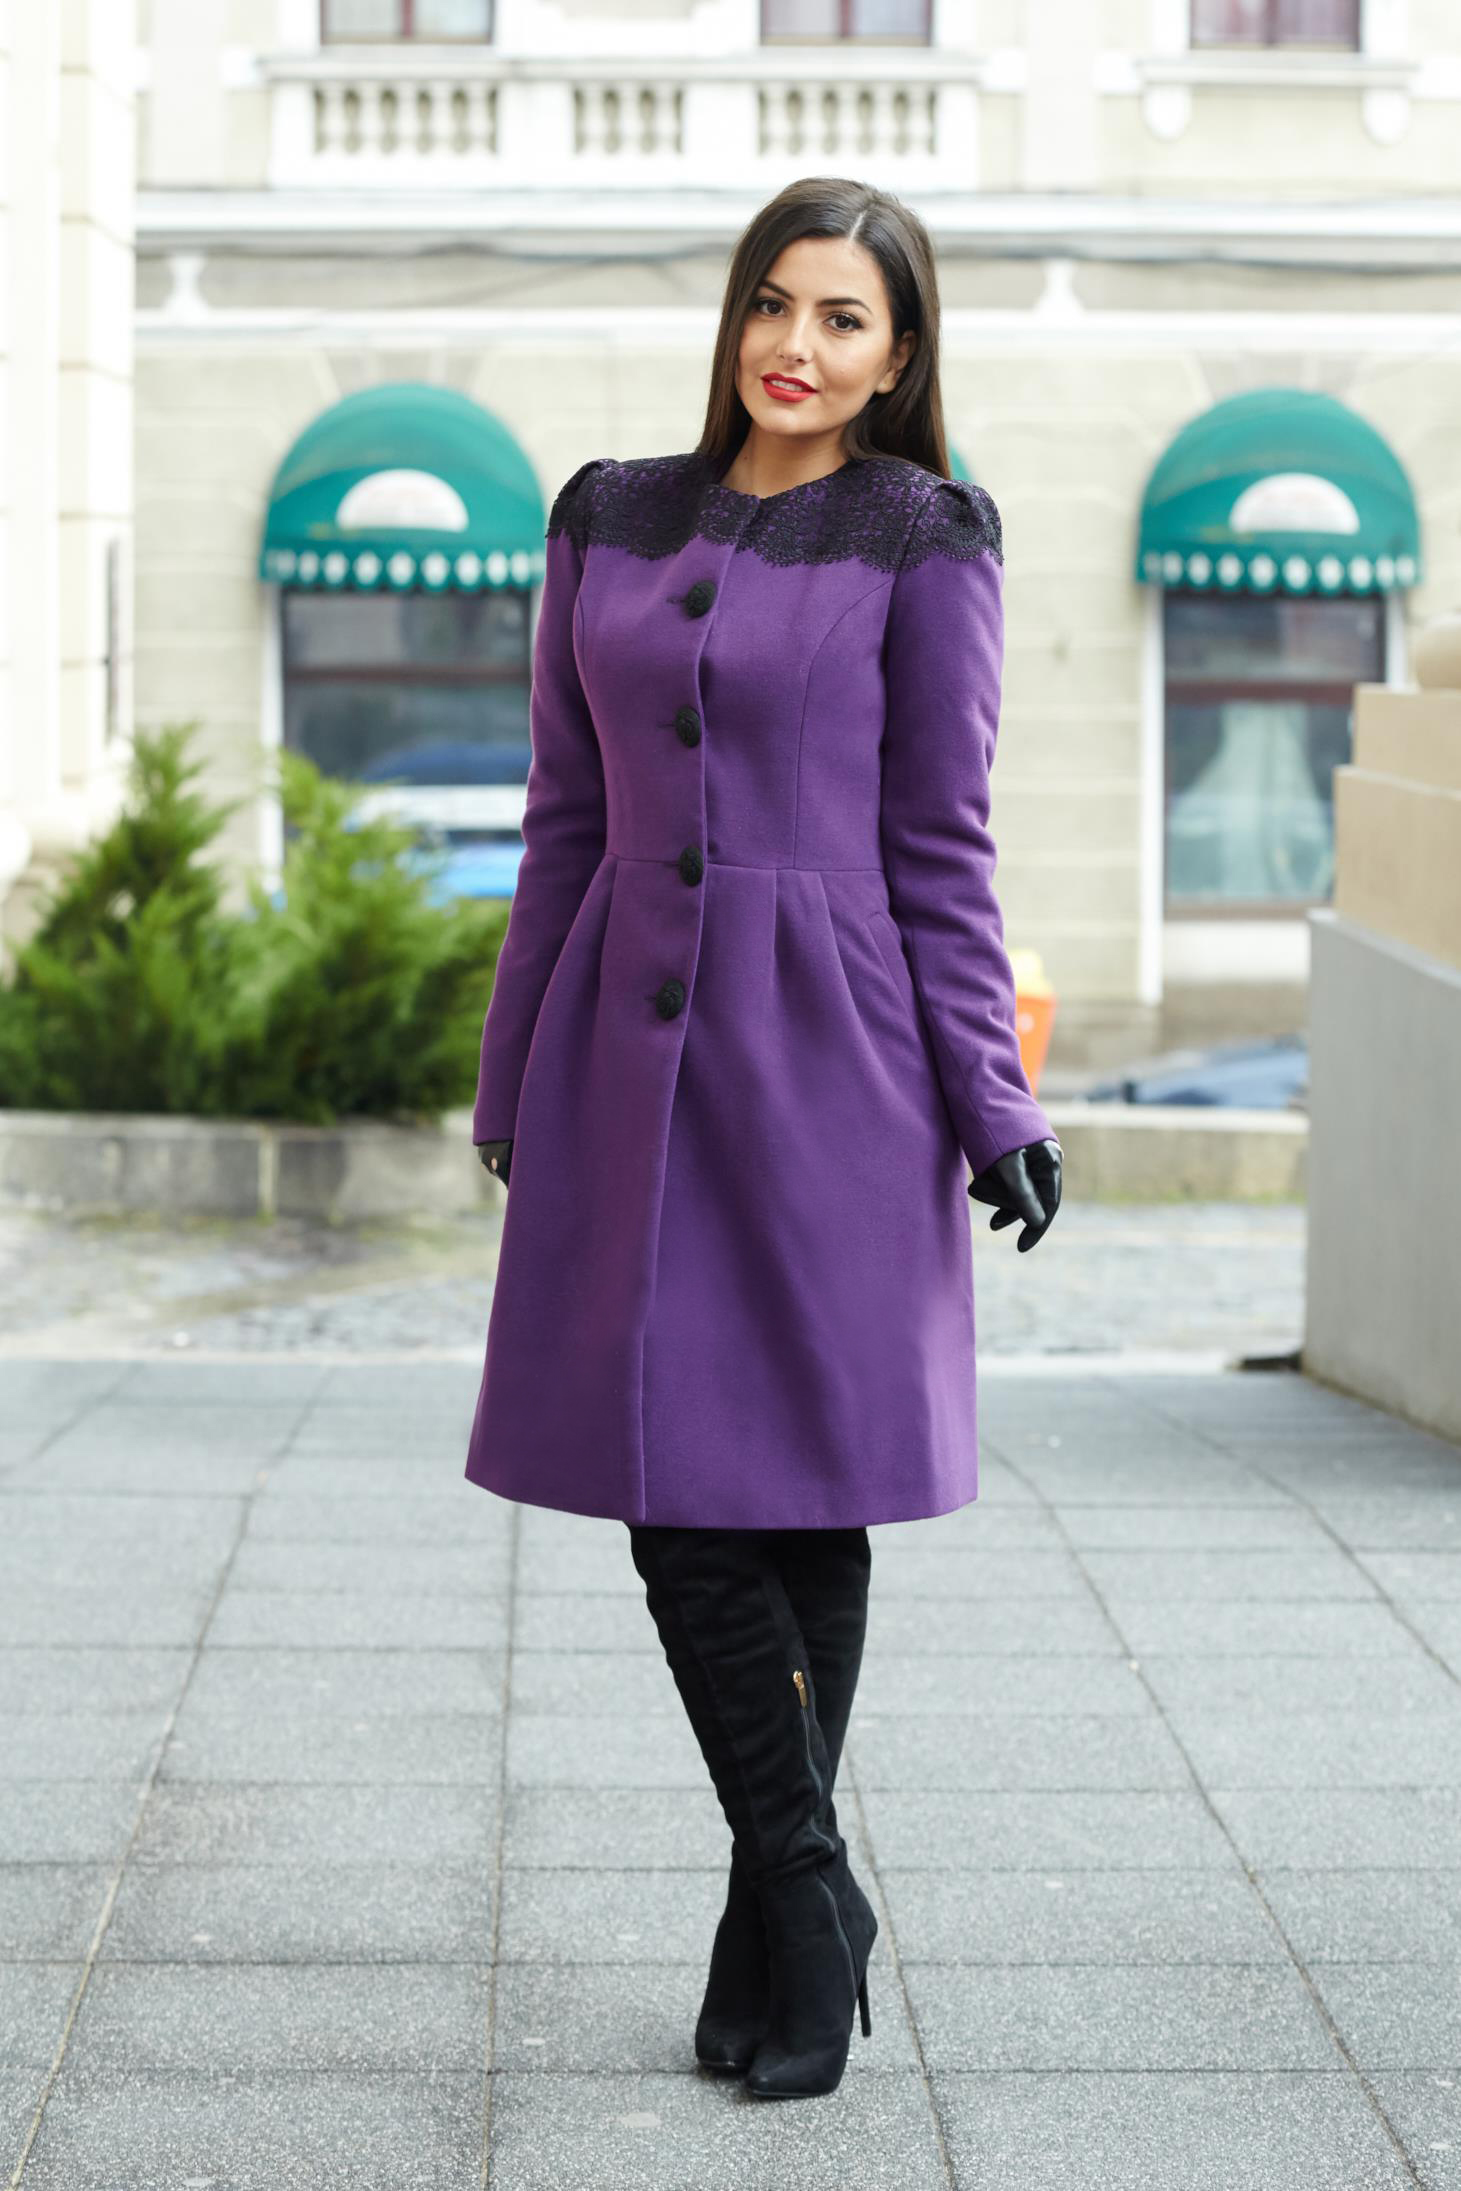 Purple elegant wool coat with embroidery details